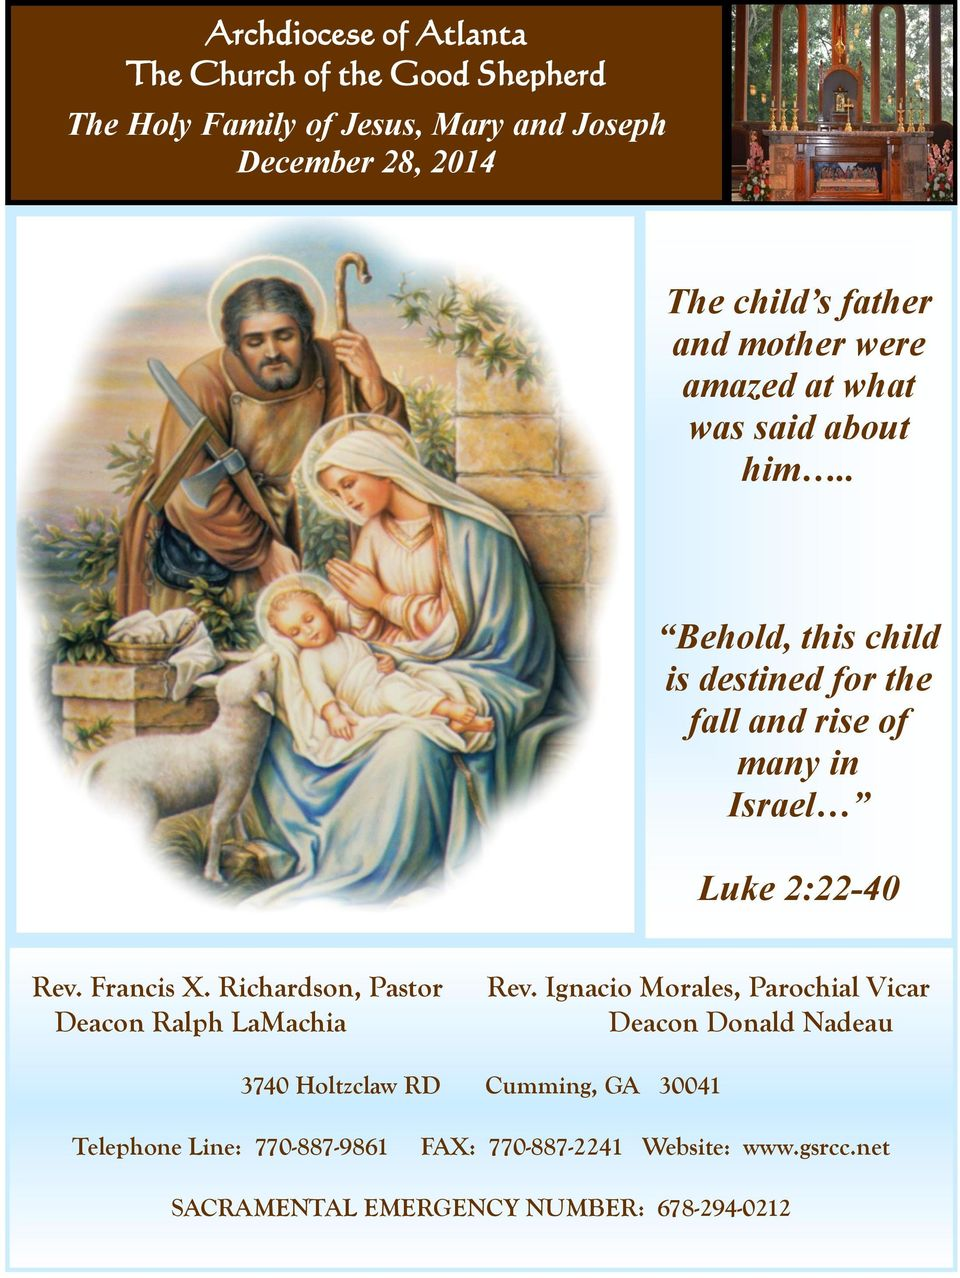 . Behold, this child is destined for the fall and rise of many in Israel Luke 2:22-40 Rev. Francis X.